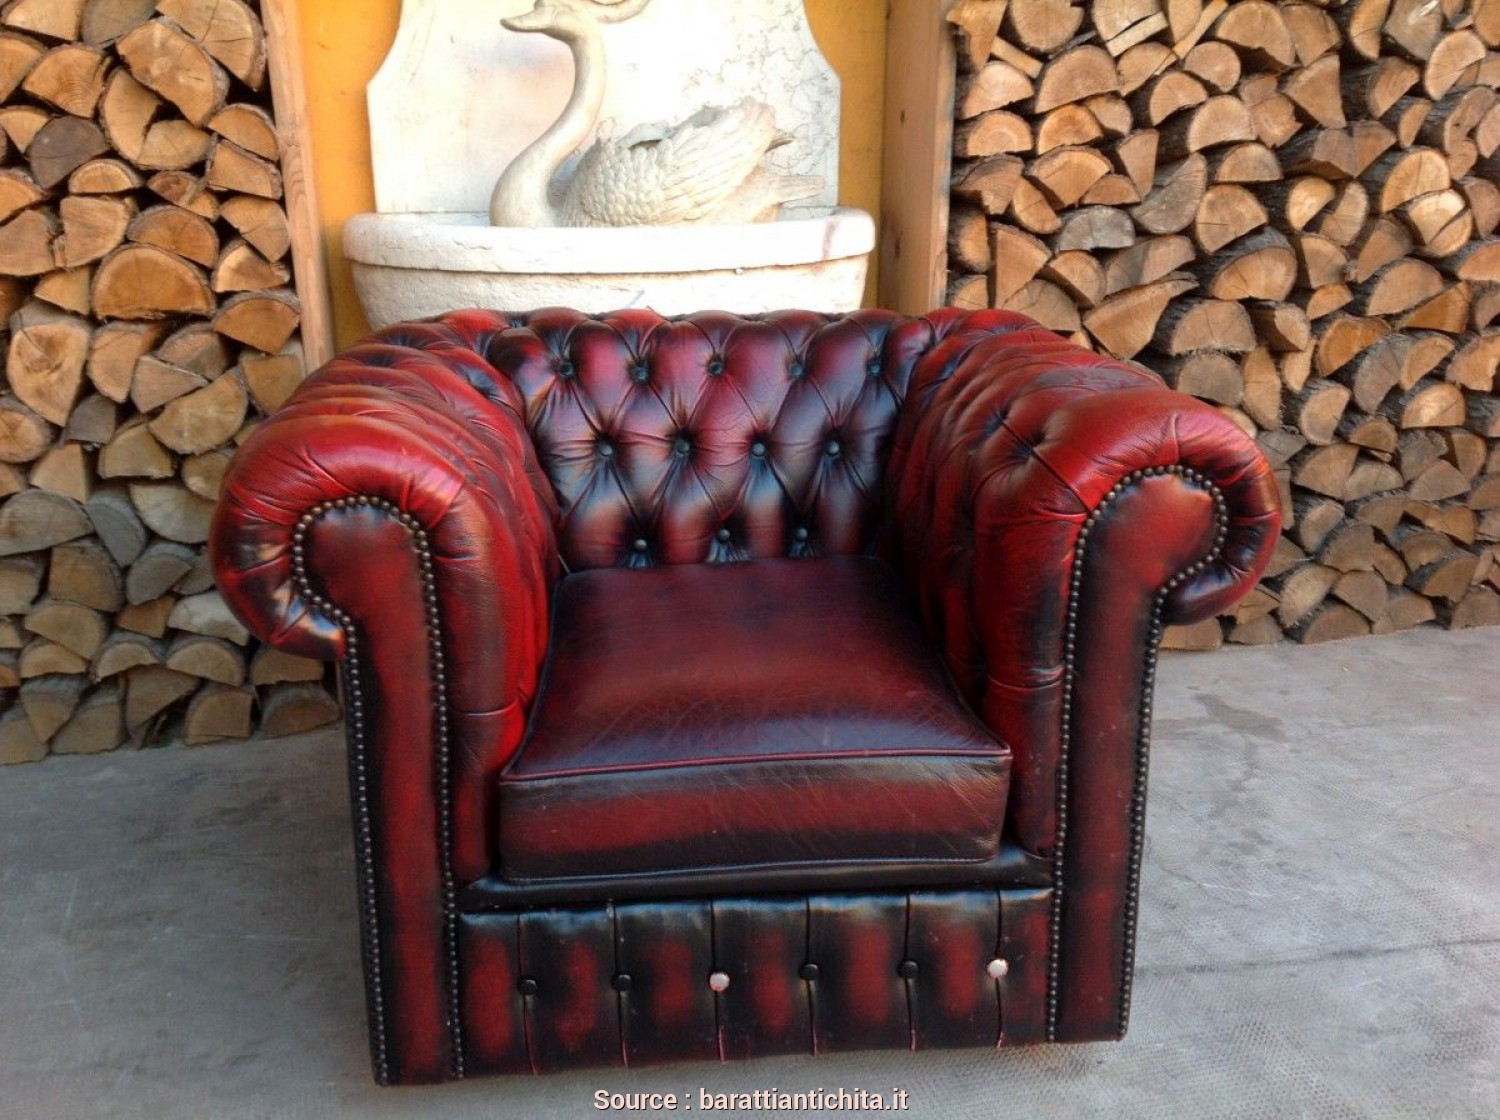 Poltrone Pelle Verde Vintage, Costoso Poltrona Chesterfield Club Originale Inglese Vintage In Vera Pelle Color Bordeaux